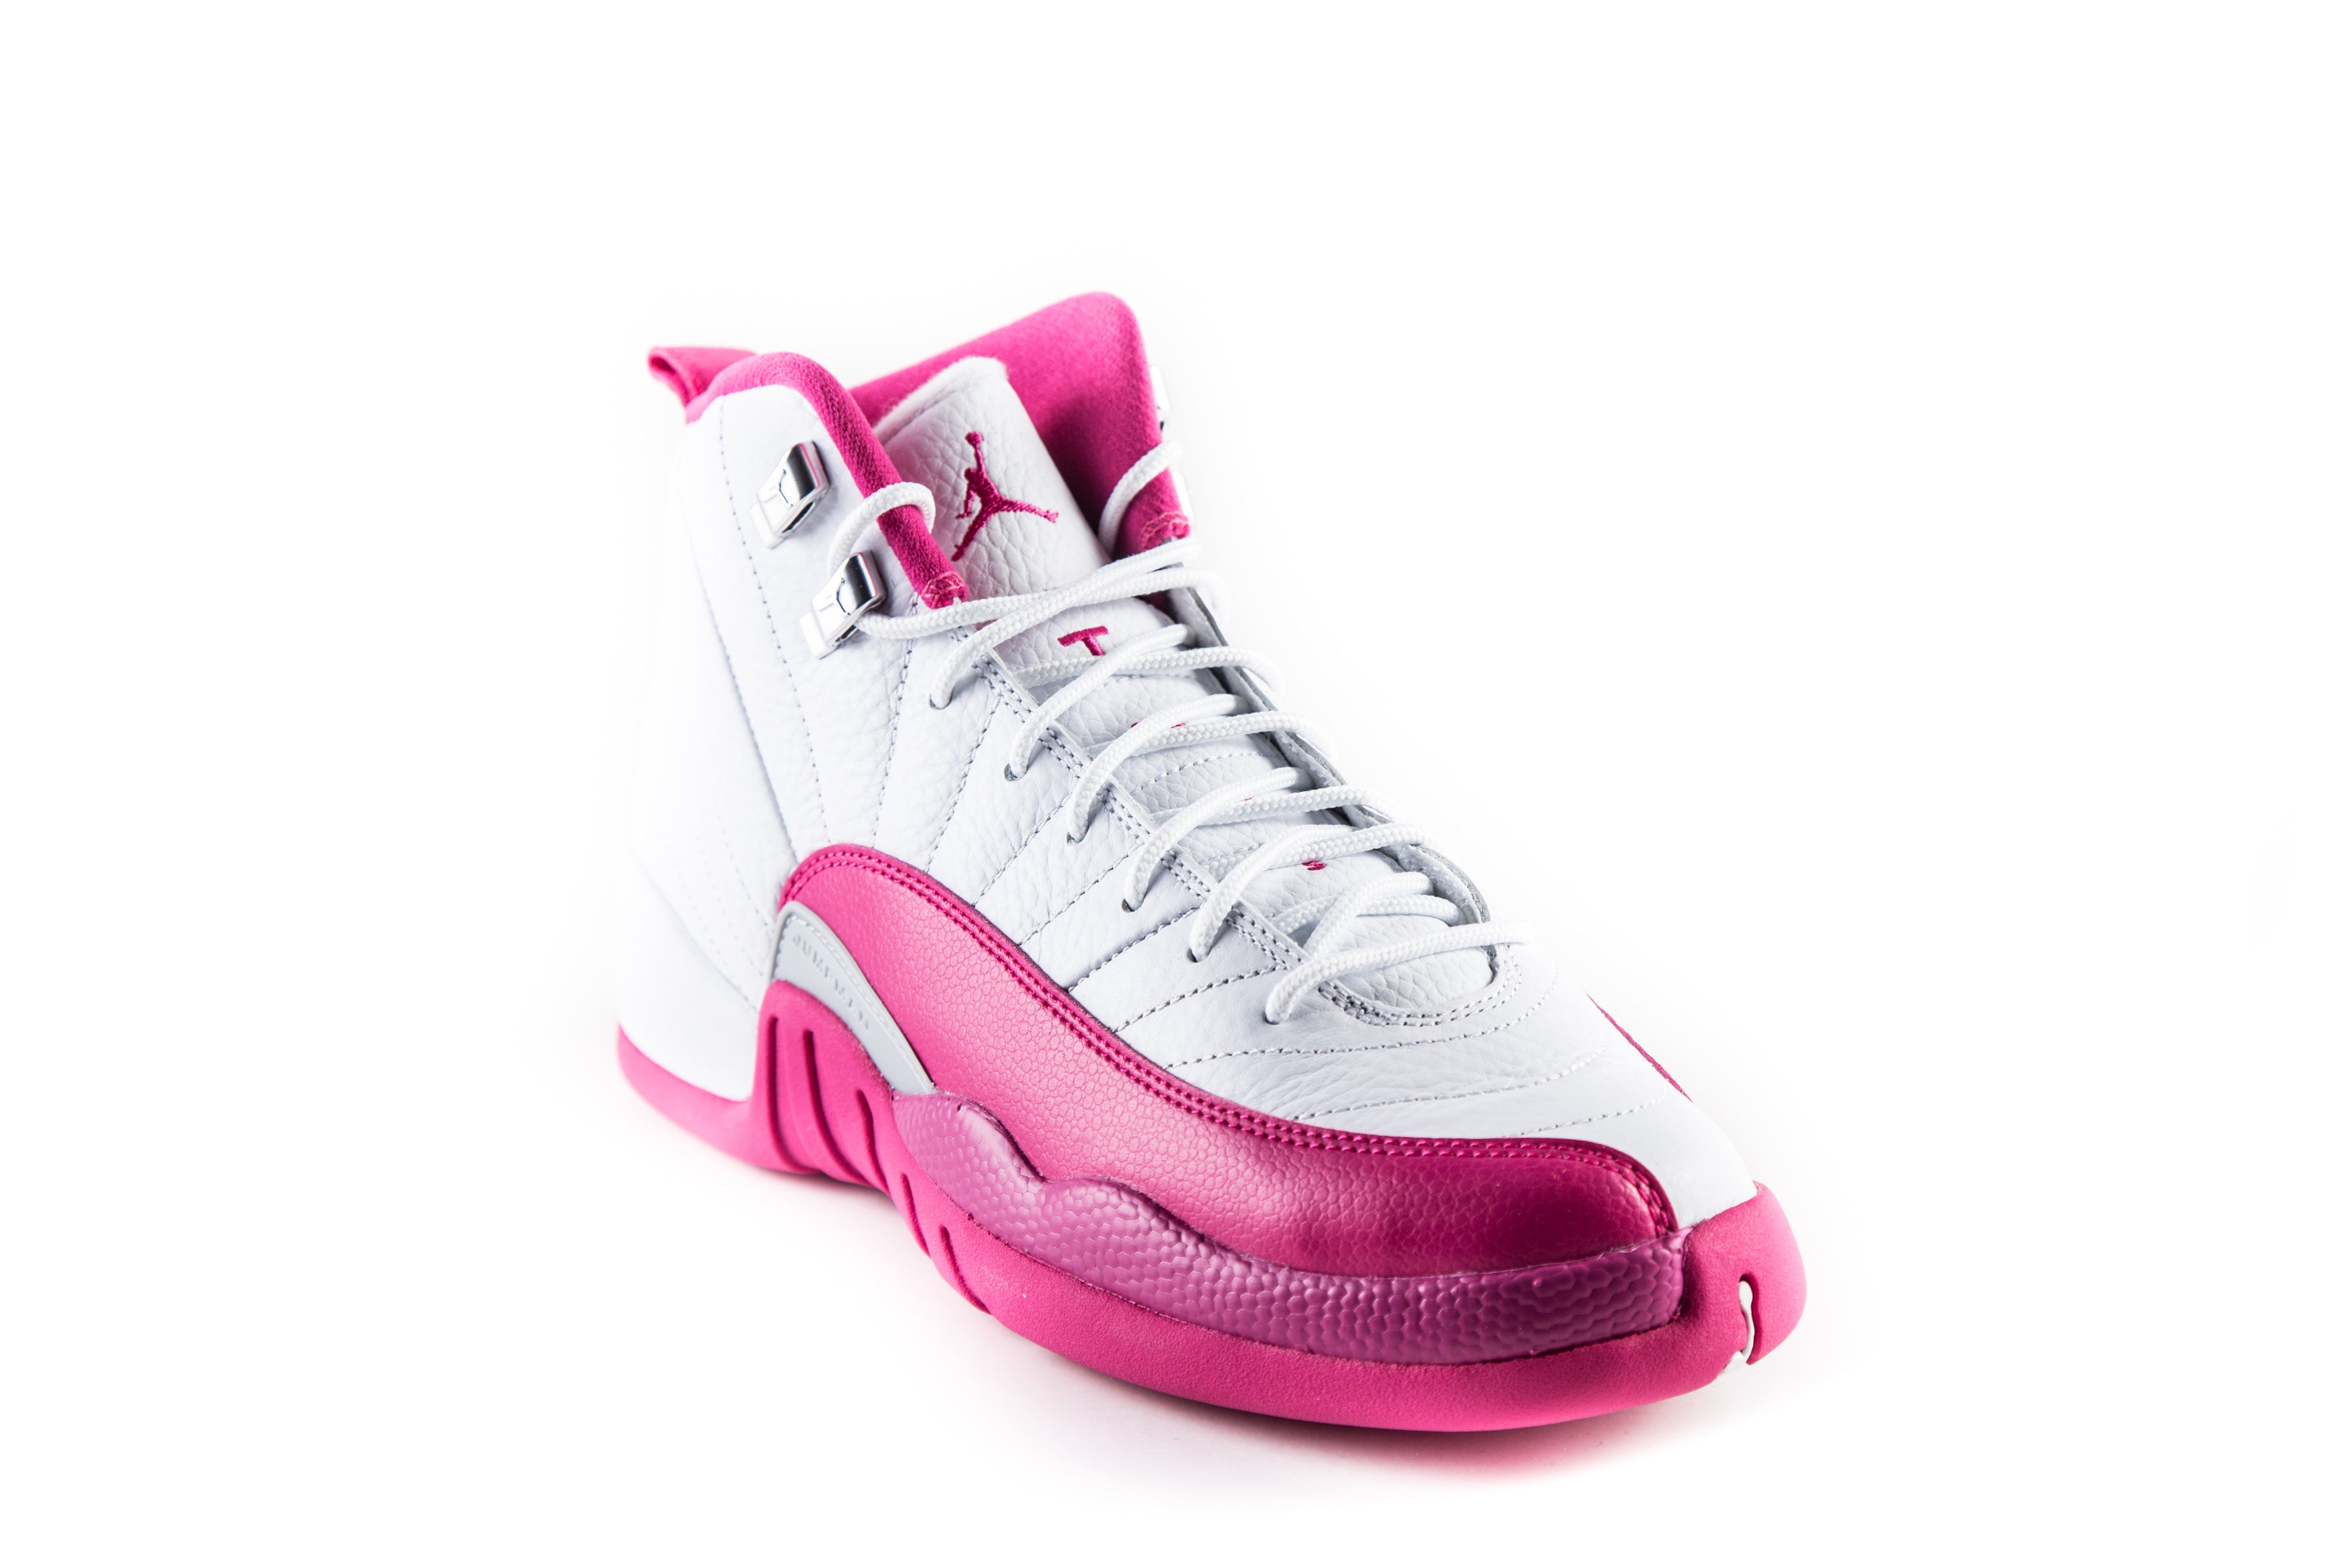 Air Jordan 12 Retro VALENTINES DAY